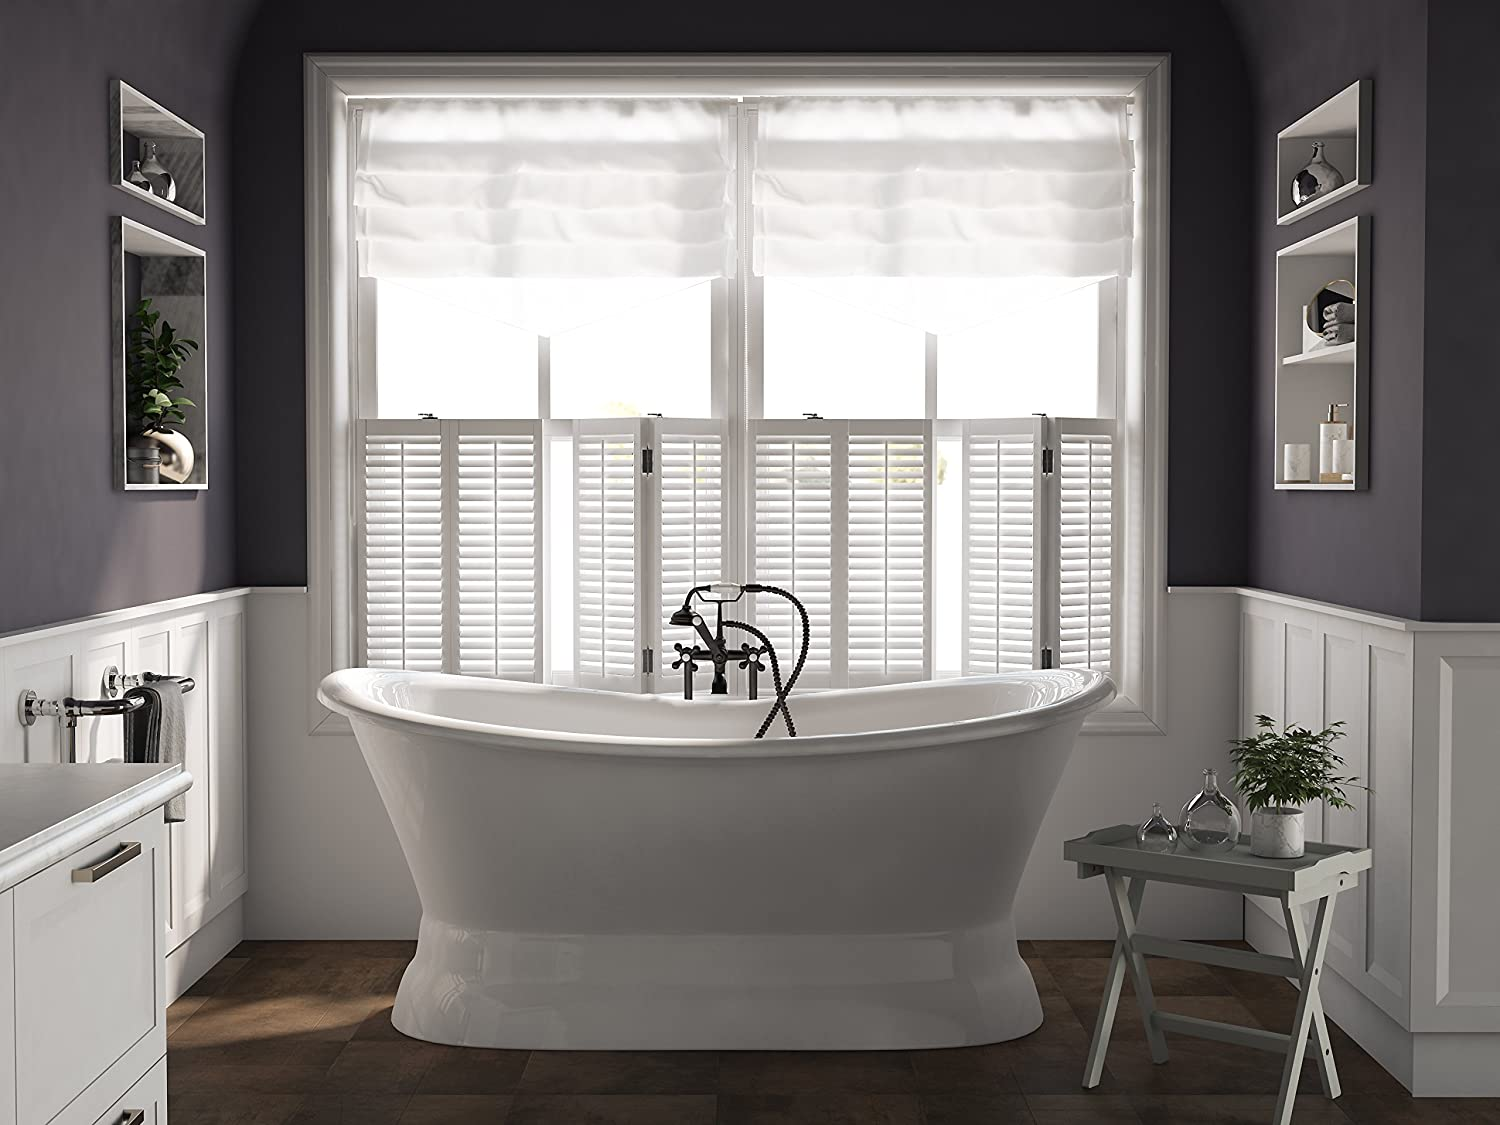 71 Cast Iron Double Ended Slipper Pedestal Tub with NO Faucet Holes- Benton